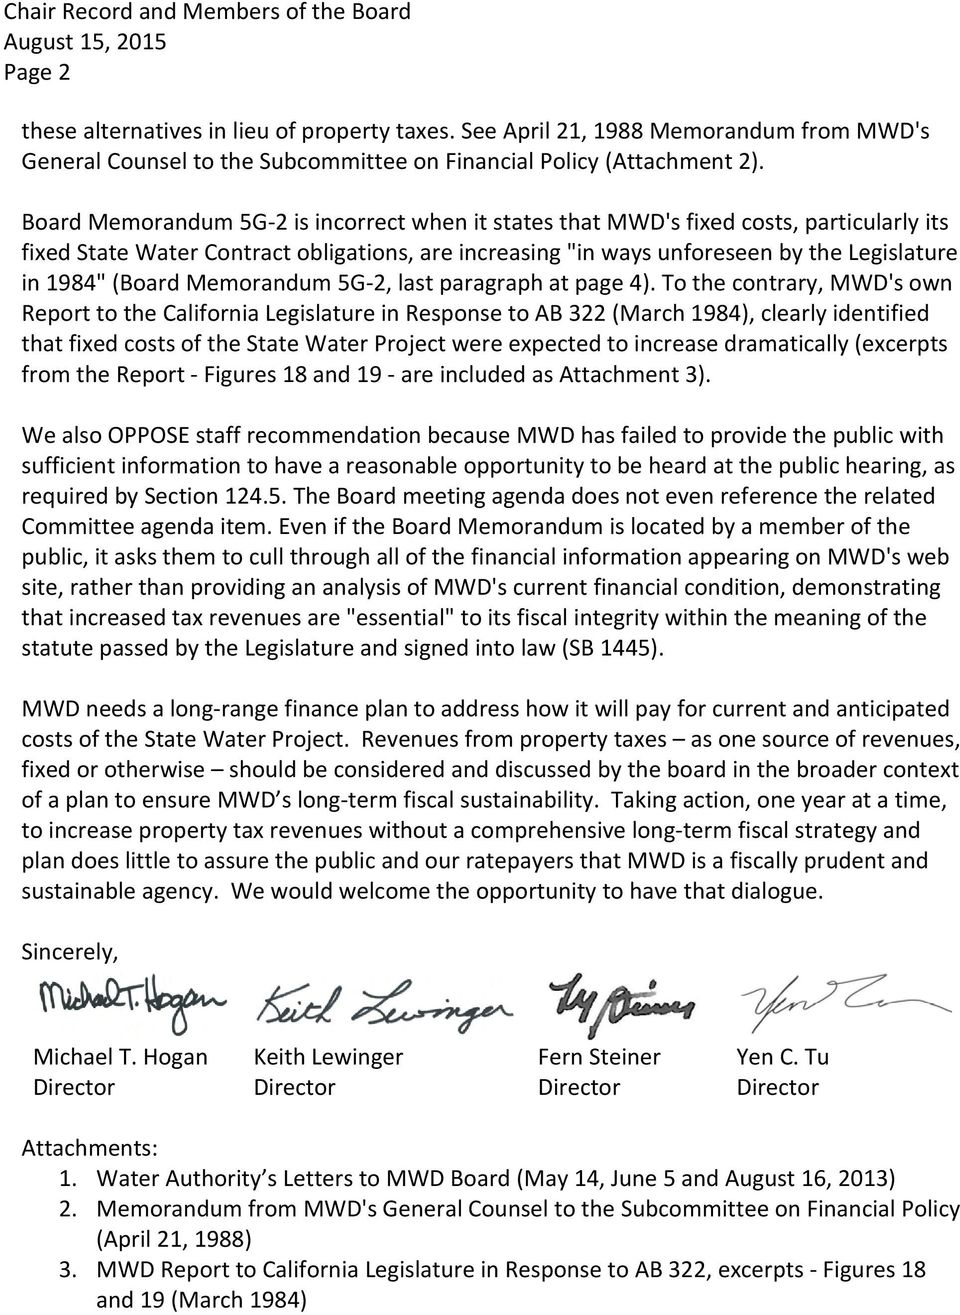 "Board Memorandum 5G 2 is incorrect when it states that MWD's fixed costs, particularly its fixed State Water Contract obligations, are increasing ""in ways unforeseen by the Legislature in 1984"""